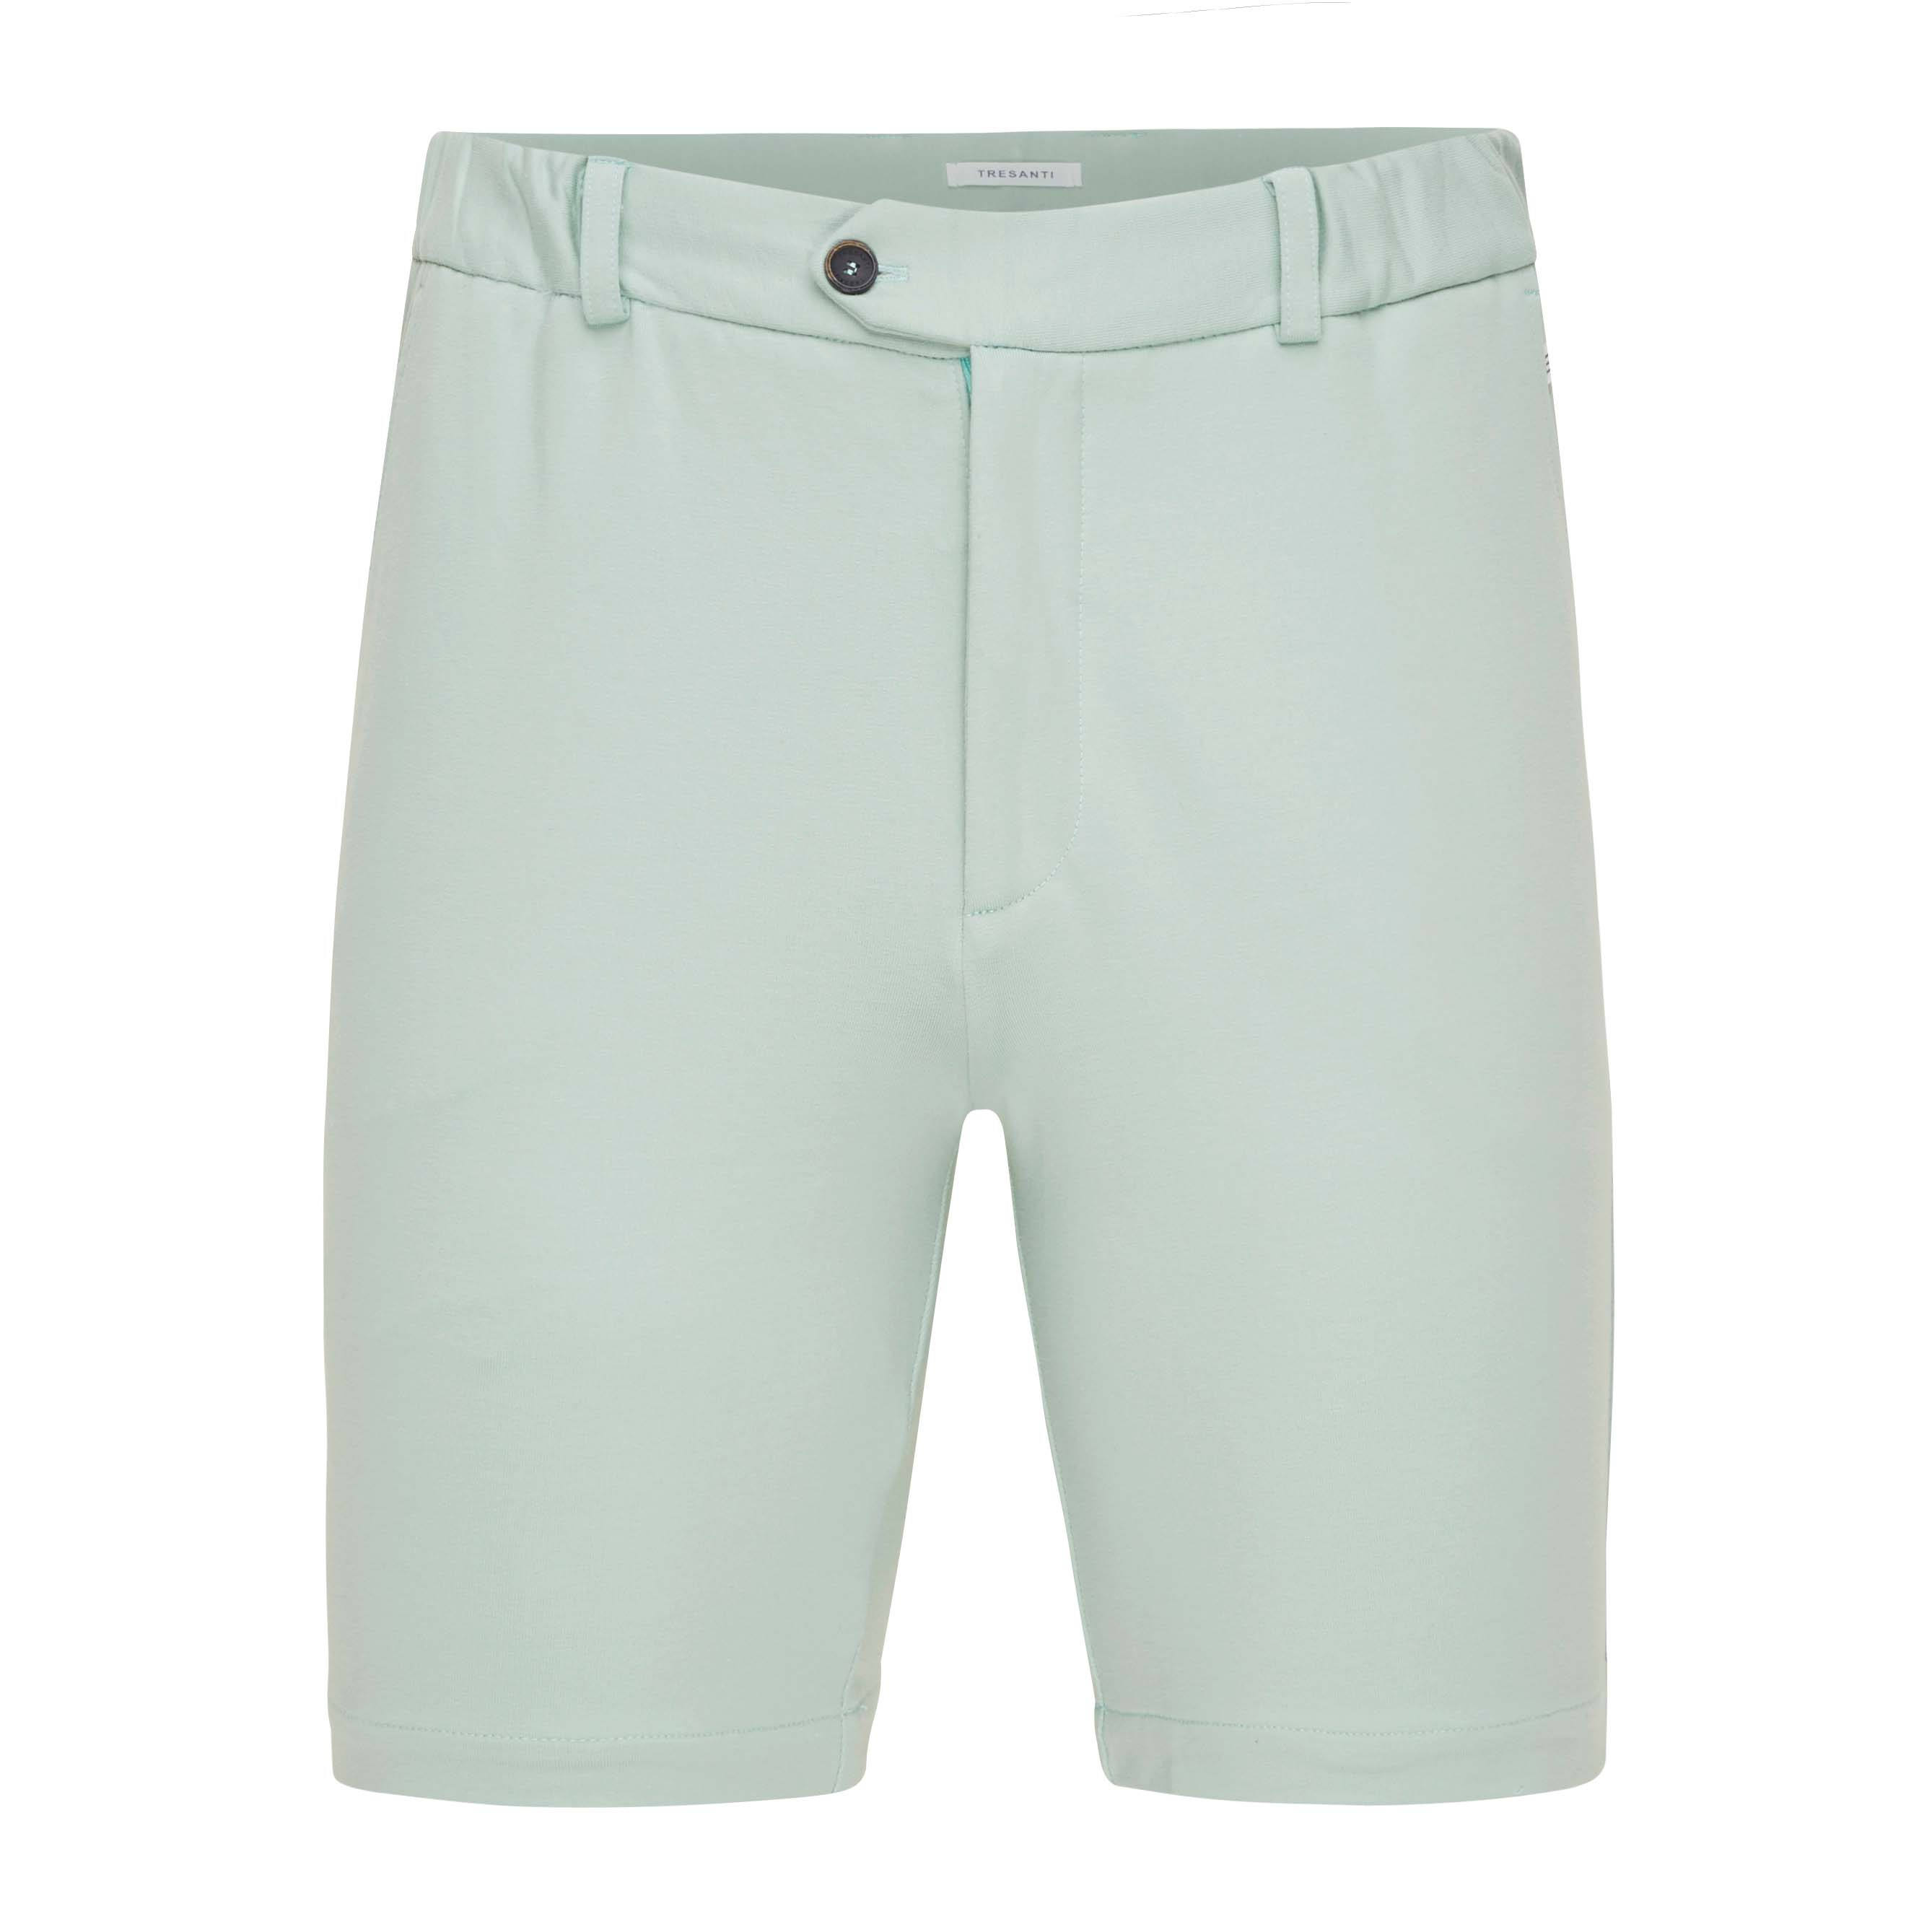 Trey | Shorts stretch mint green